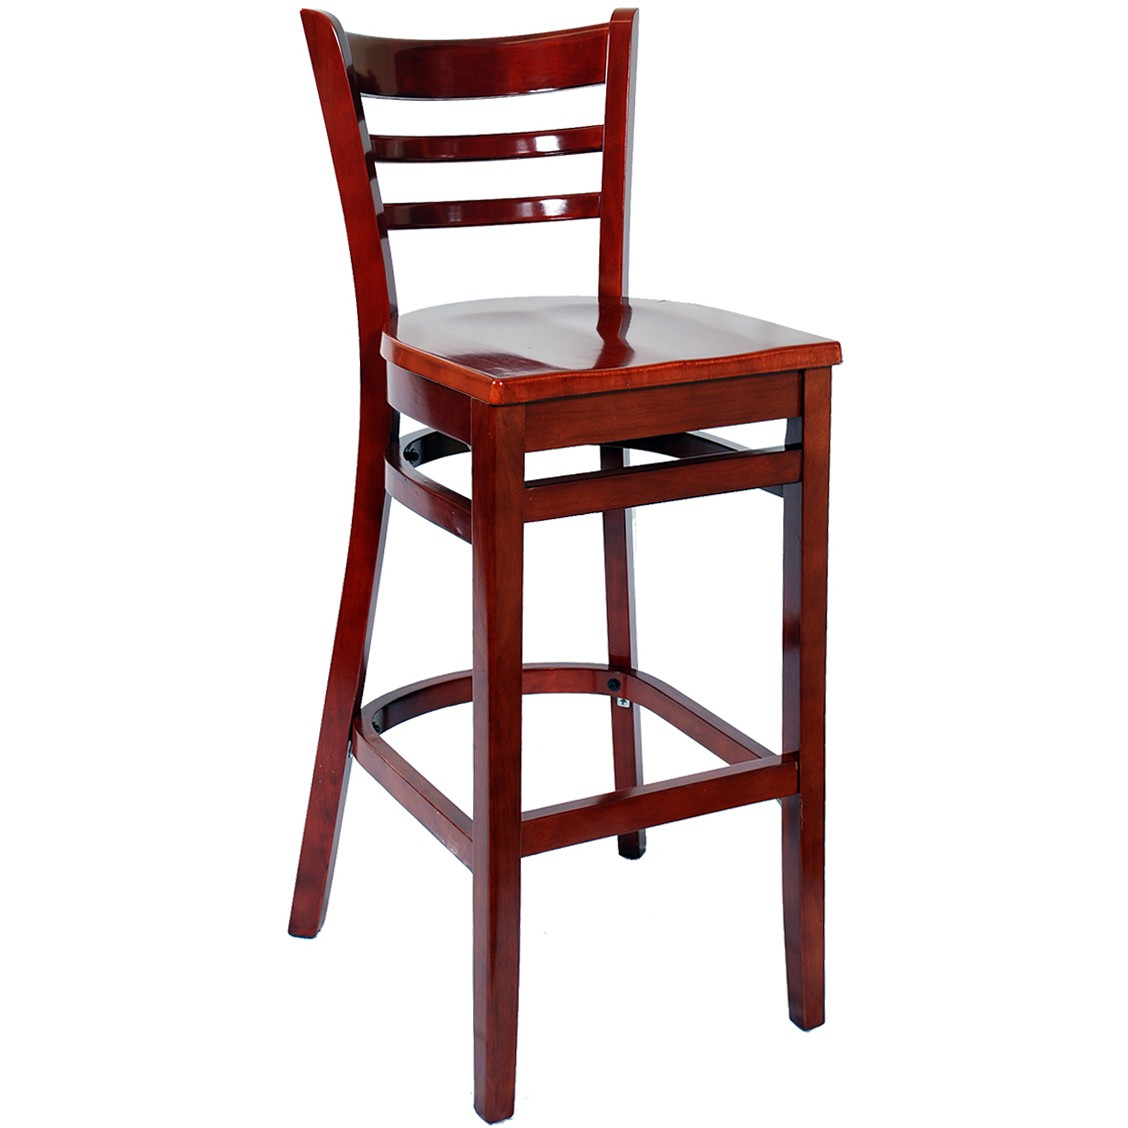 Counter Stools With Backs Of Ladder Back Wood Bar Stools